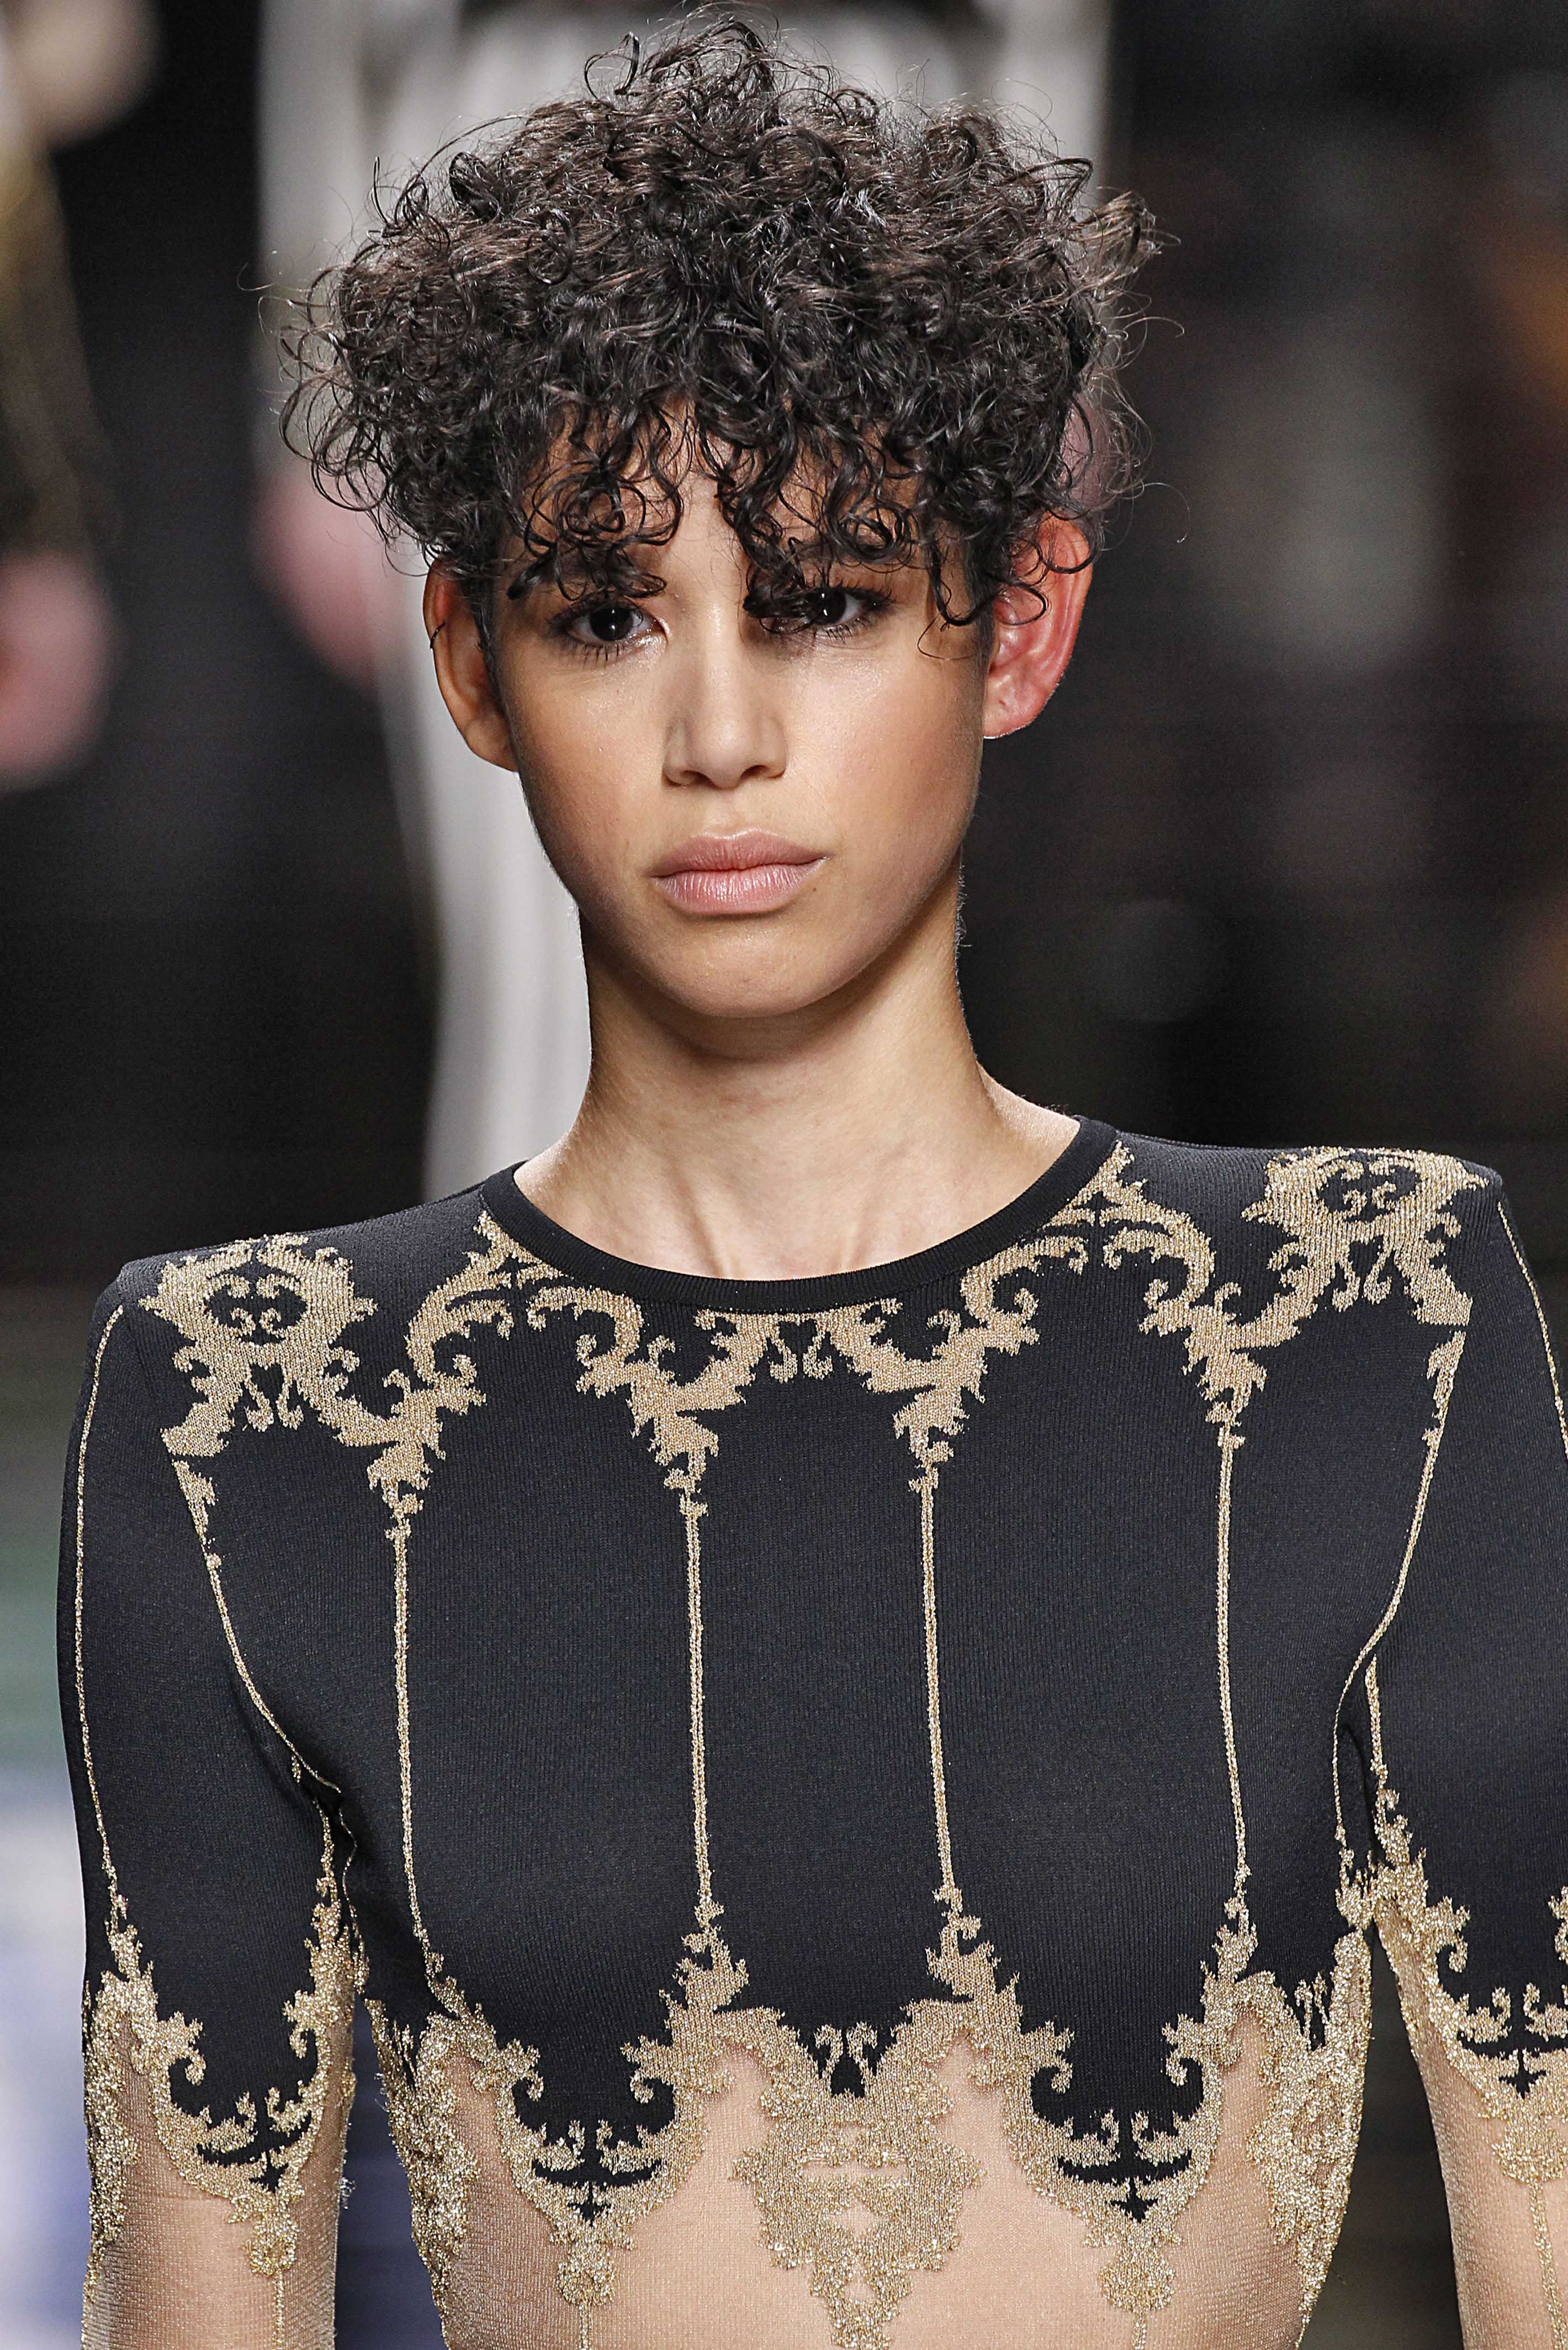 Edgy Hairstyles For Curly Hair